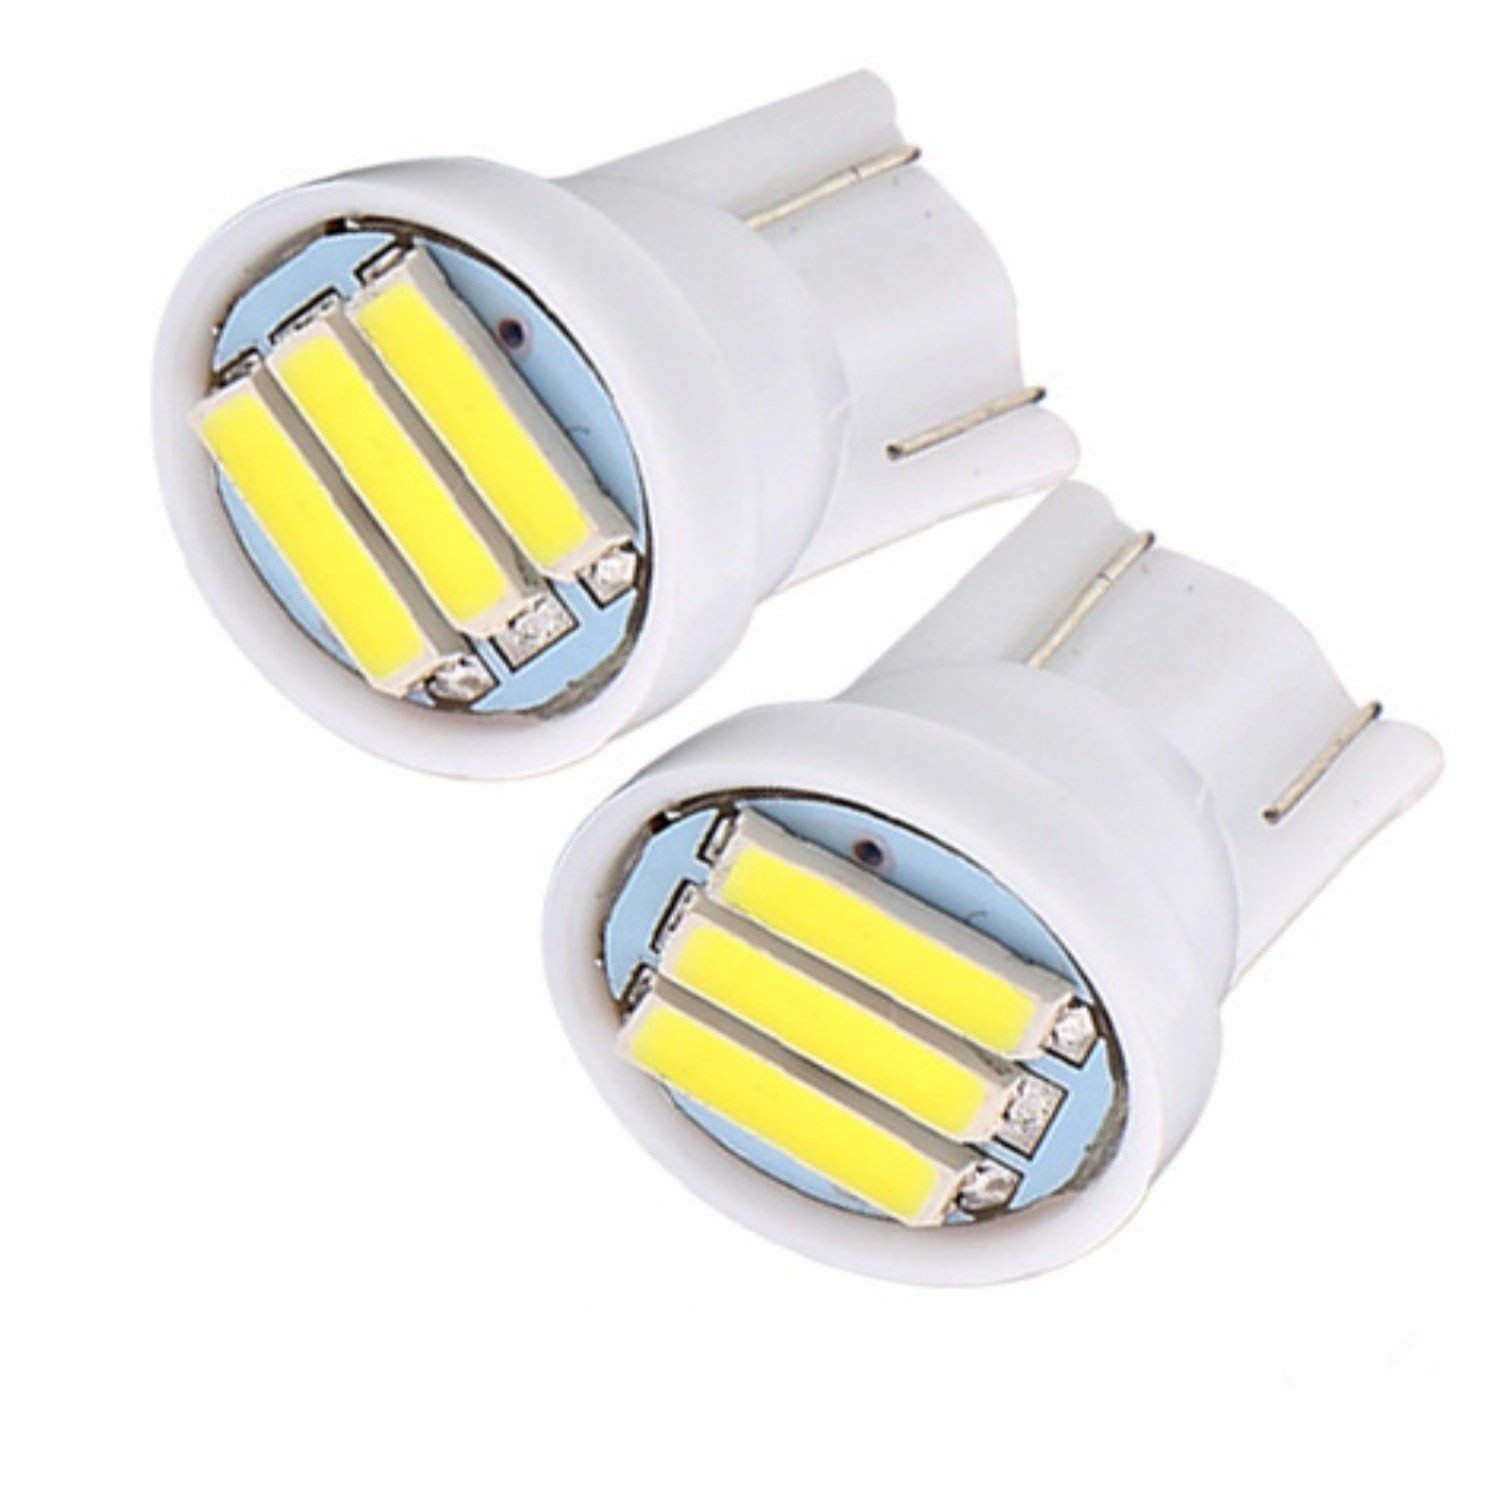 ARH Auto Accessories 3 SMD | T10 | 501 | W5W | Sidelight Bulbs, 12 V, 5 W, Pack of 2